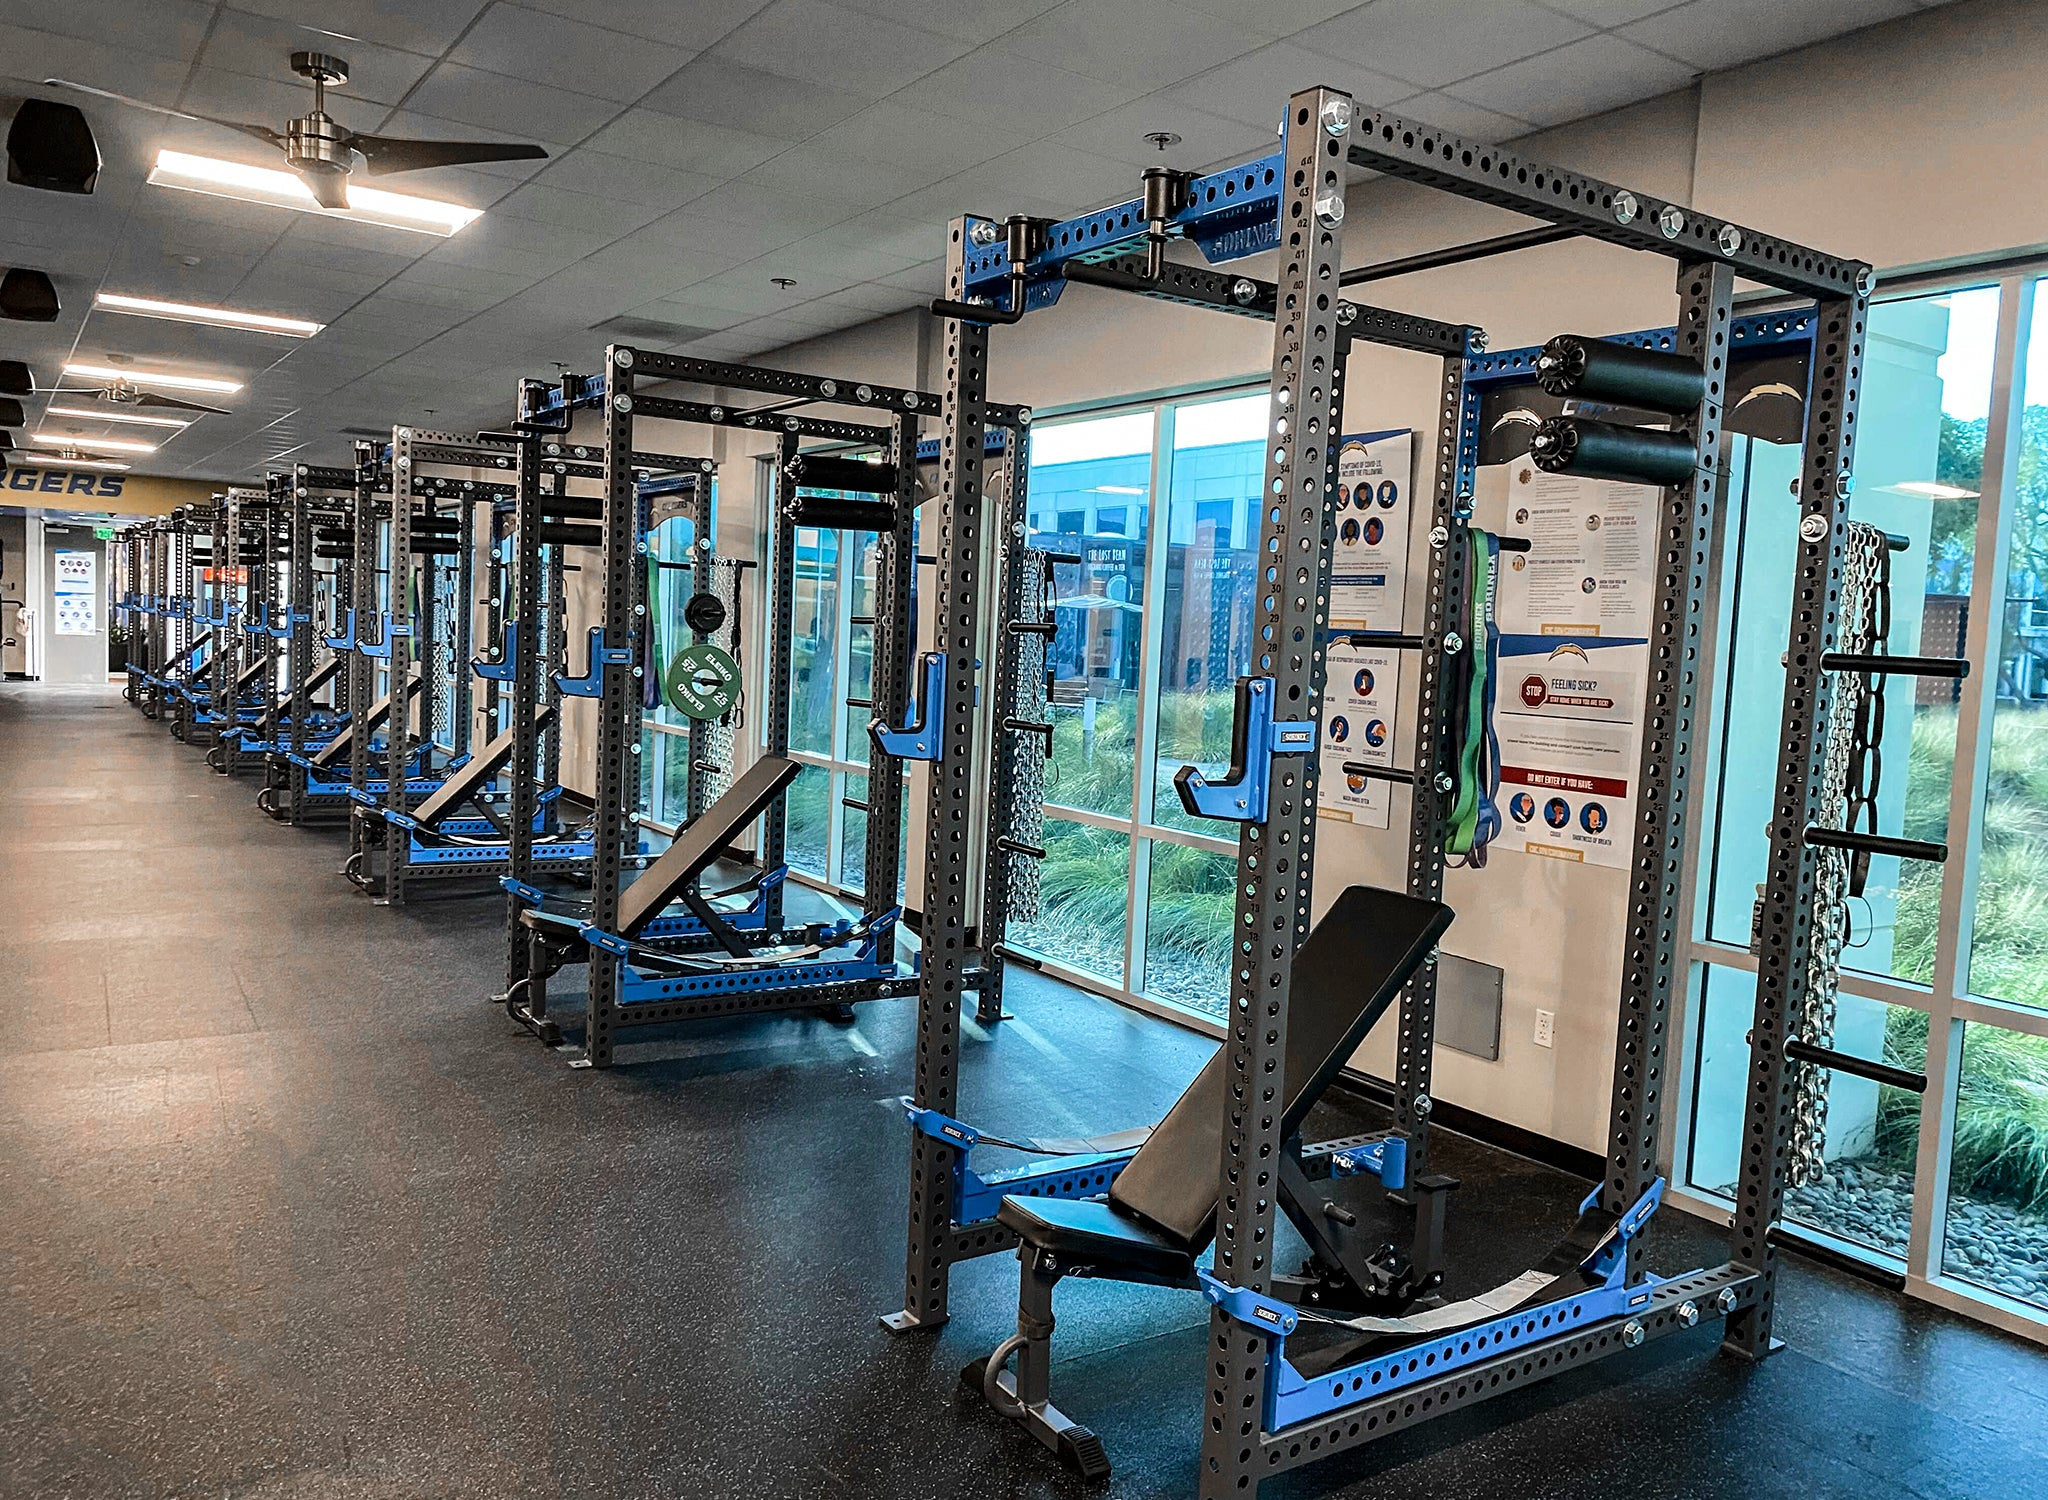 Los Angeles LA Chargers NFL weight room